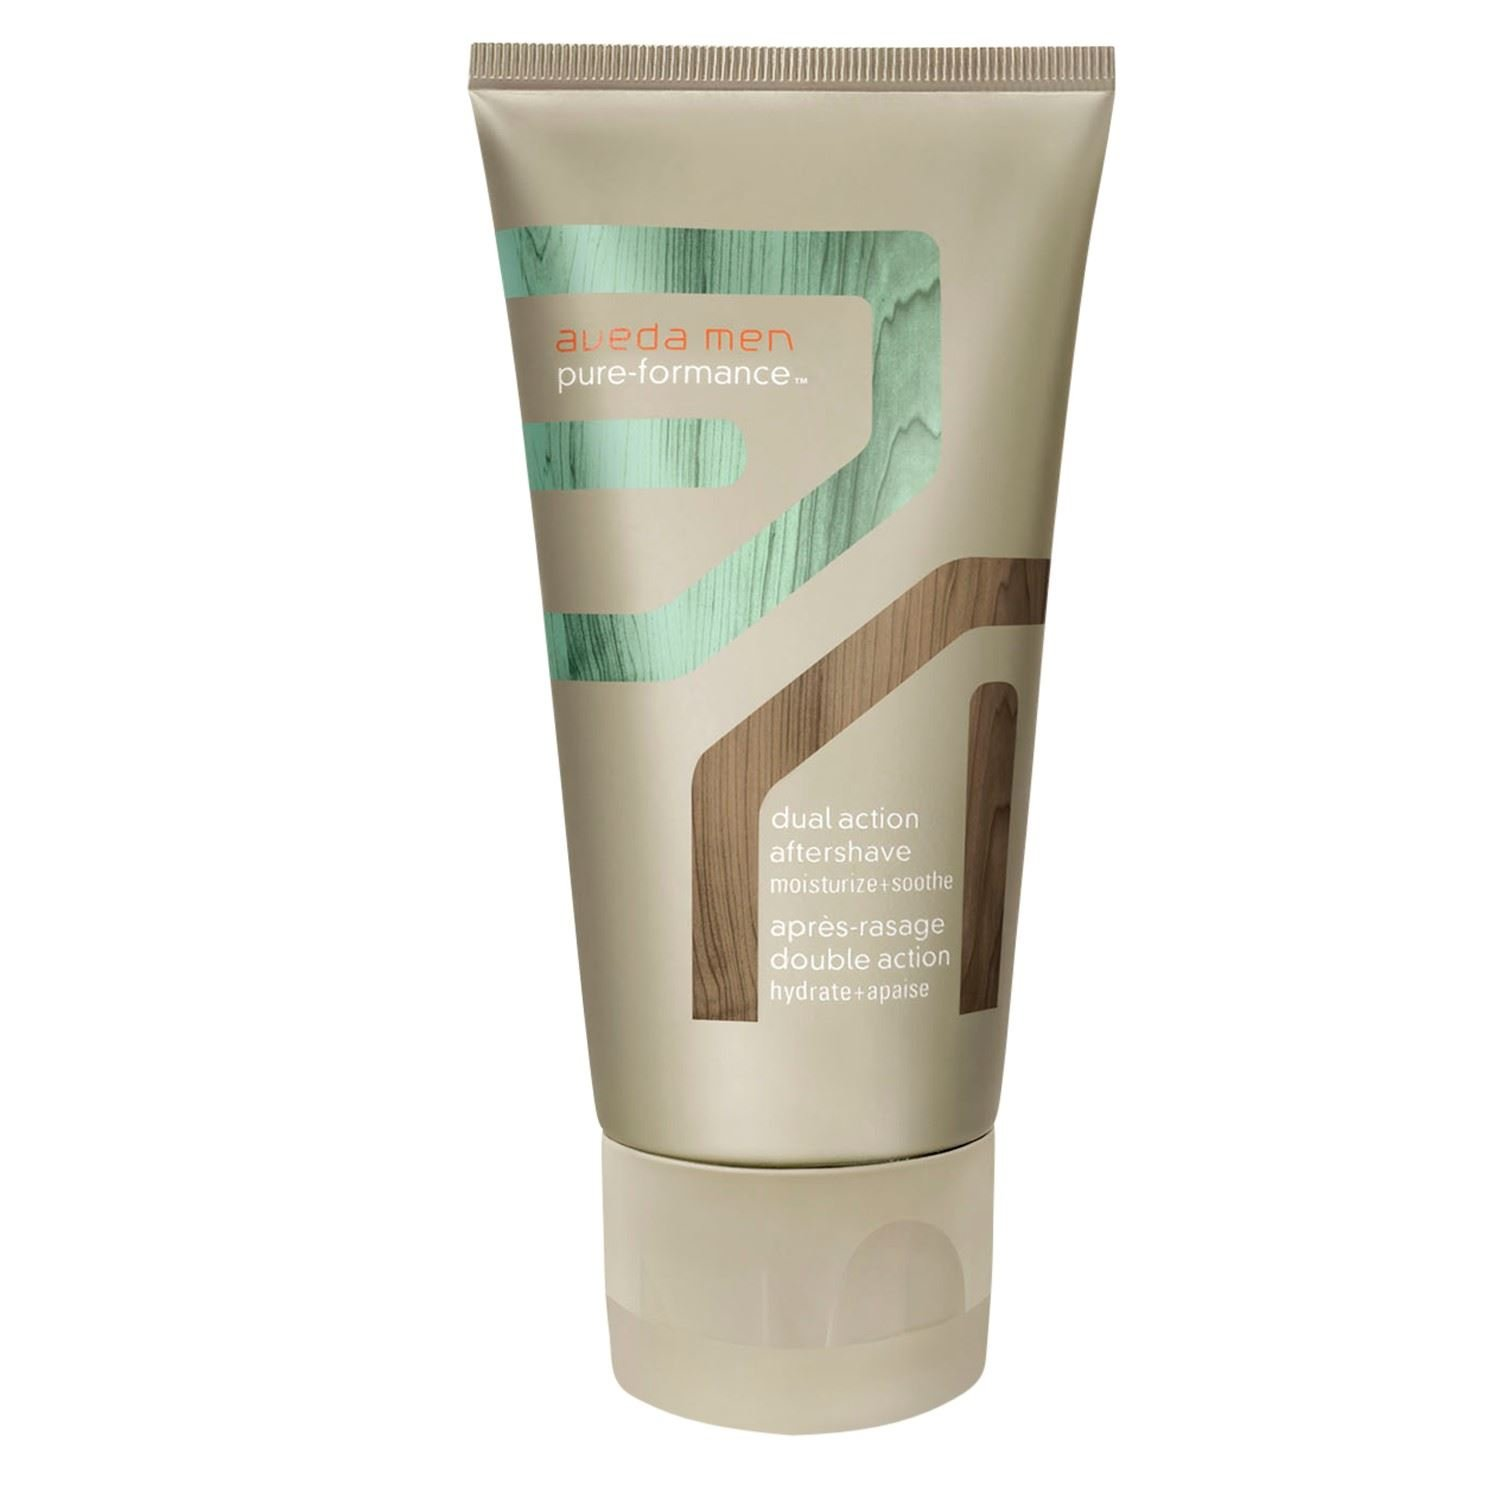 AVEDA Men Pure-Formance Post-Shave Lotion 75ml